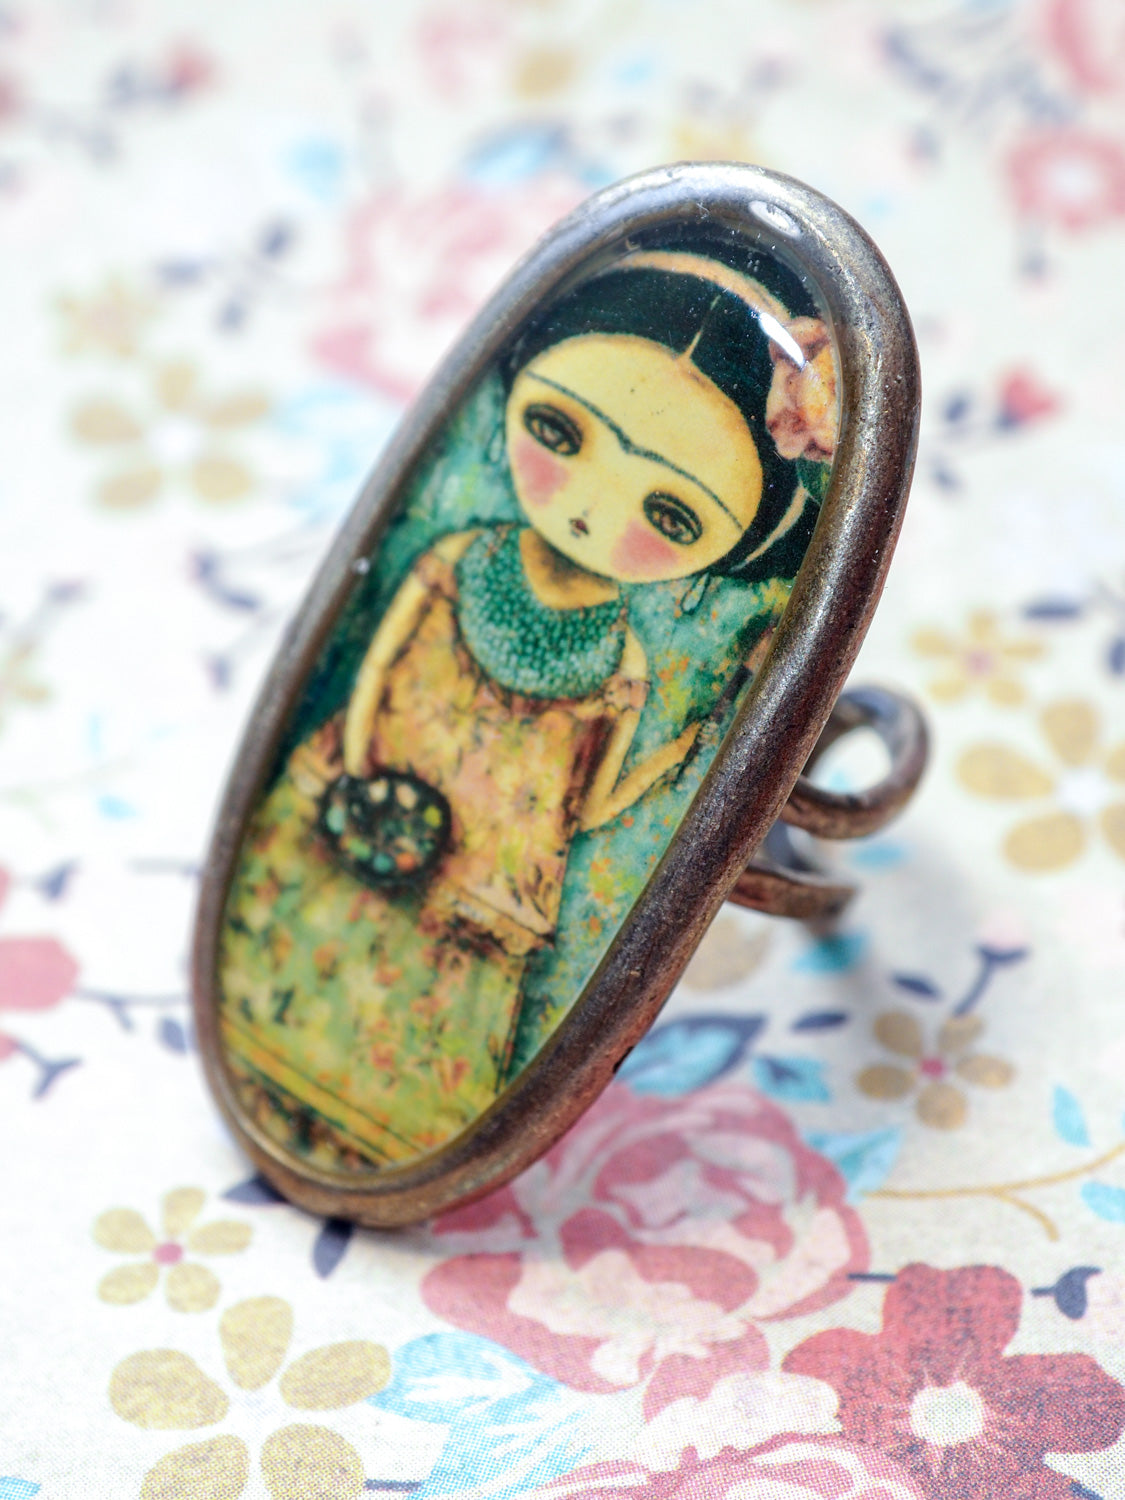 FRIDA THE ARTIST - Frida posed for Danita on this handmade ring, Jewelry by Danita Art